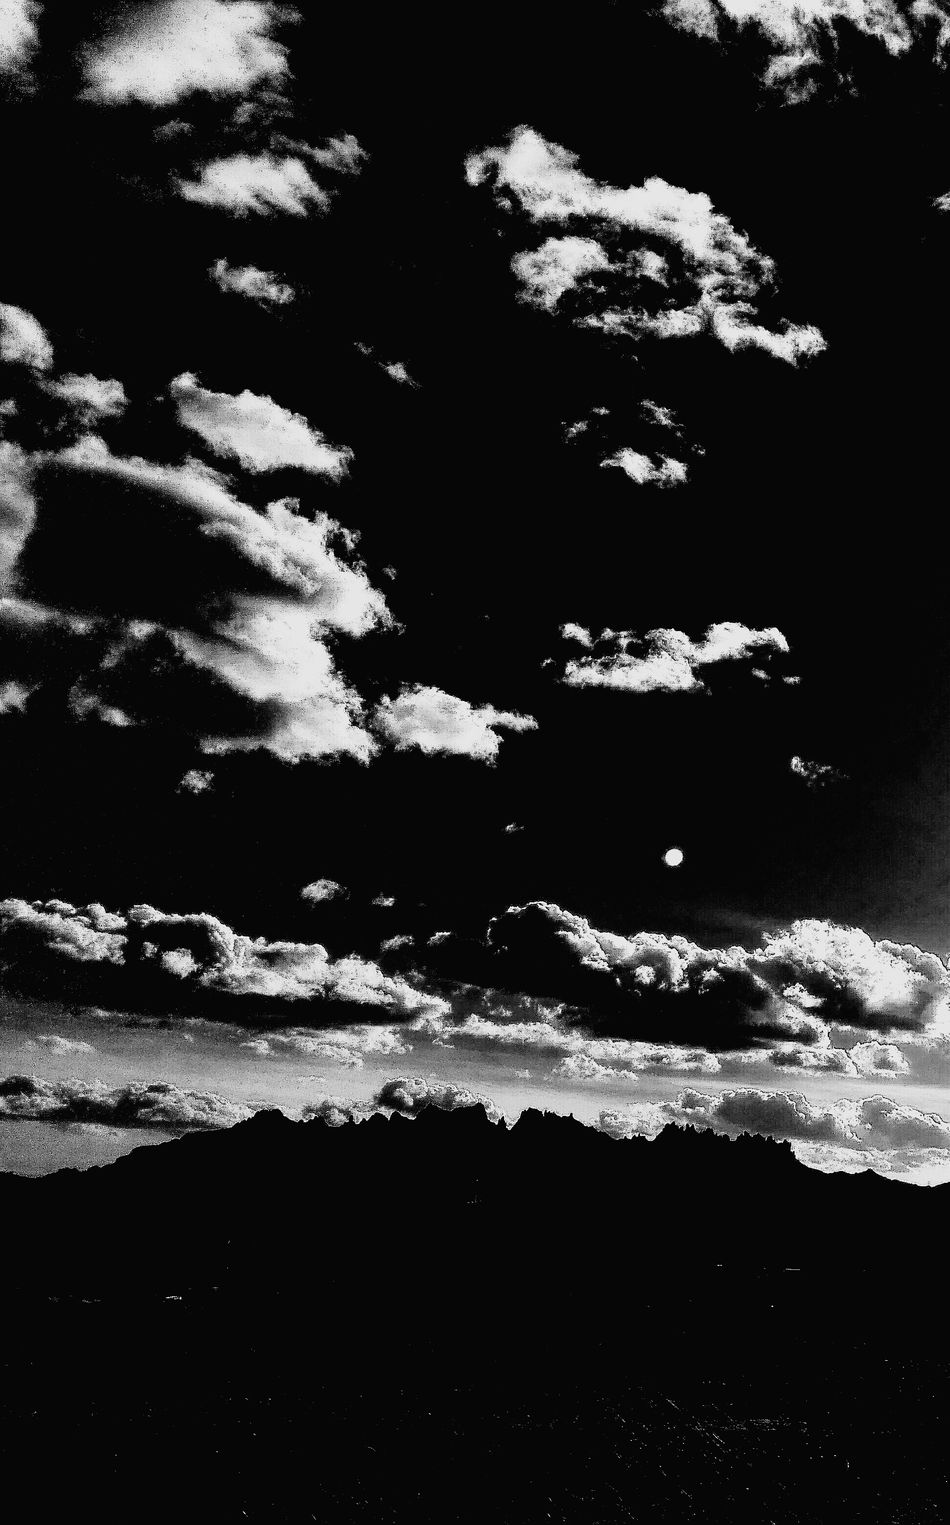 Power Powerful Power In Nature Sky_collection Skyline Skylovers Montserrat Montserrat Al Fons Montserrat Montanya Clouds Clouds And Sky Blackandwhite Black & White Blue Sky Showcase: January Lucy In The Sky With Diamonds